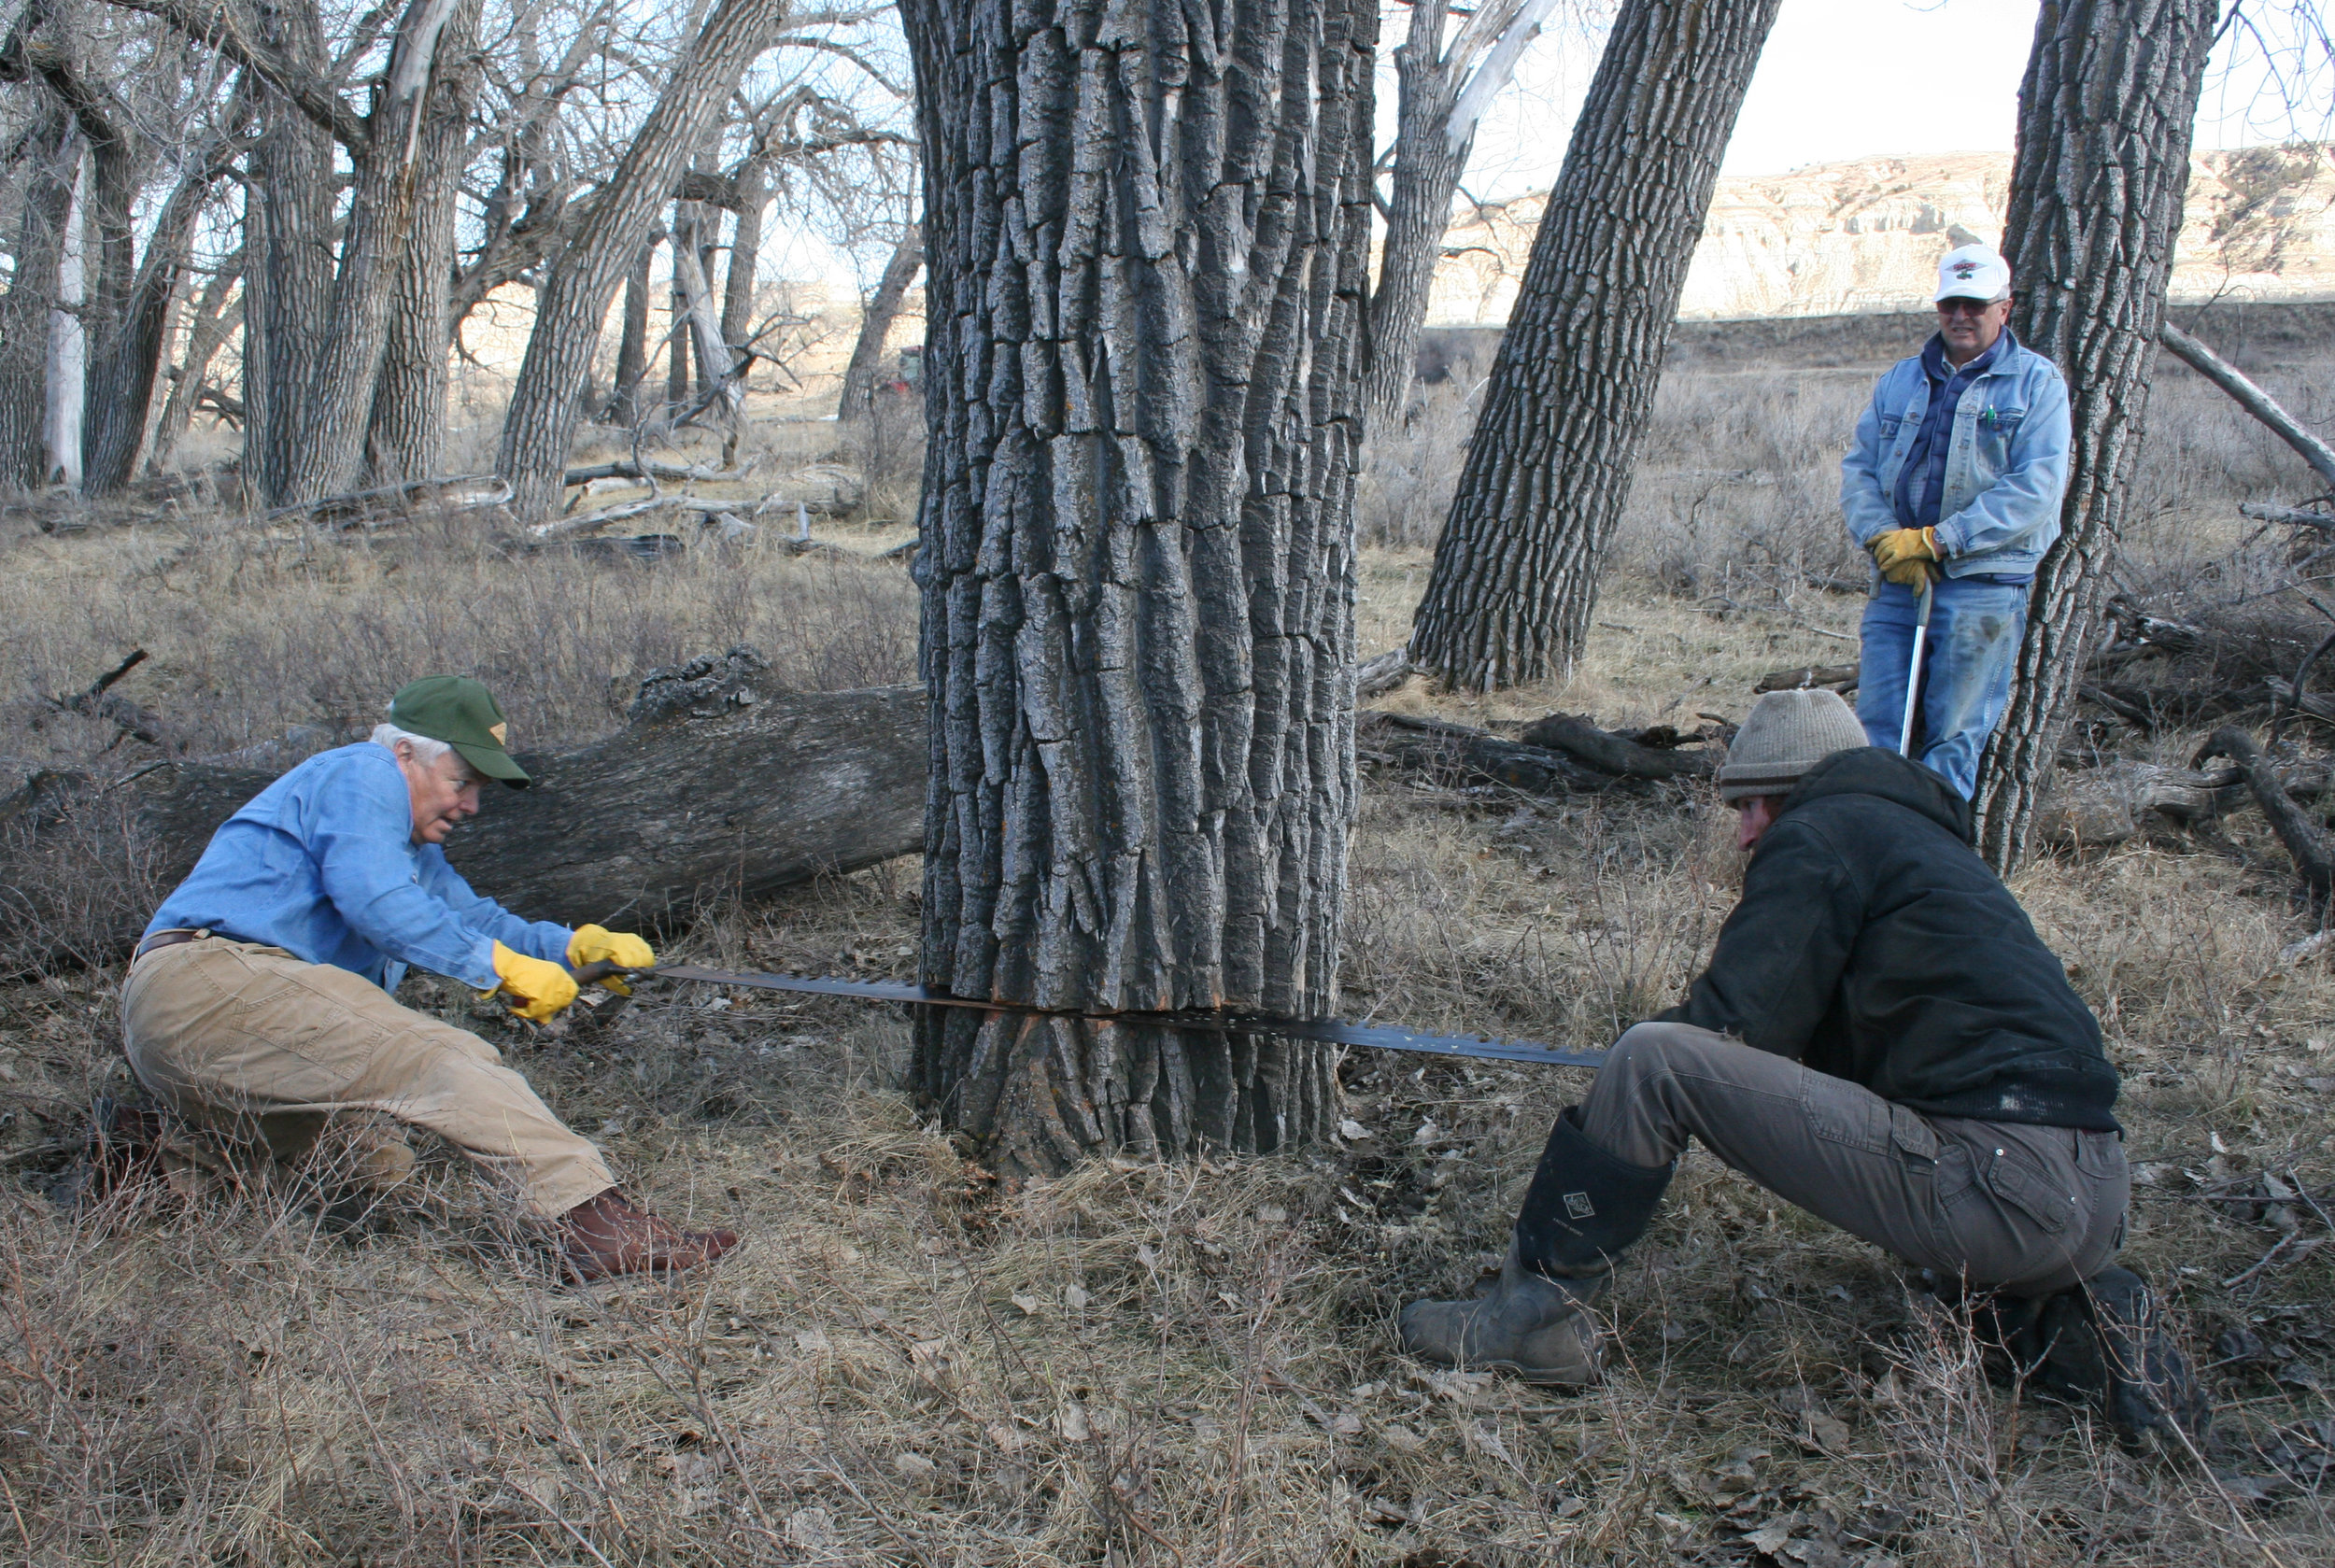 TRPLF Roosevelt Scholar Clay Jenkinson, left, and Jonathan Odermann use a cross-cut saw to cut down a cottonwood tree at the Little Missouri Cattle Ranch as Joe Frenzel looks on.